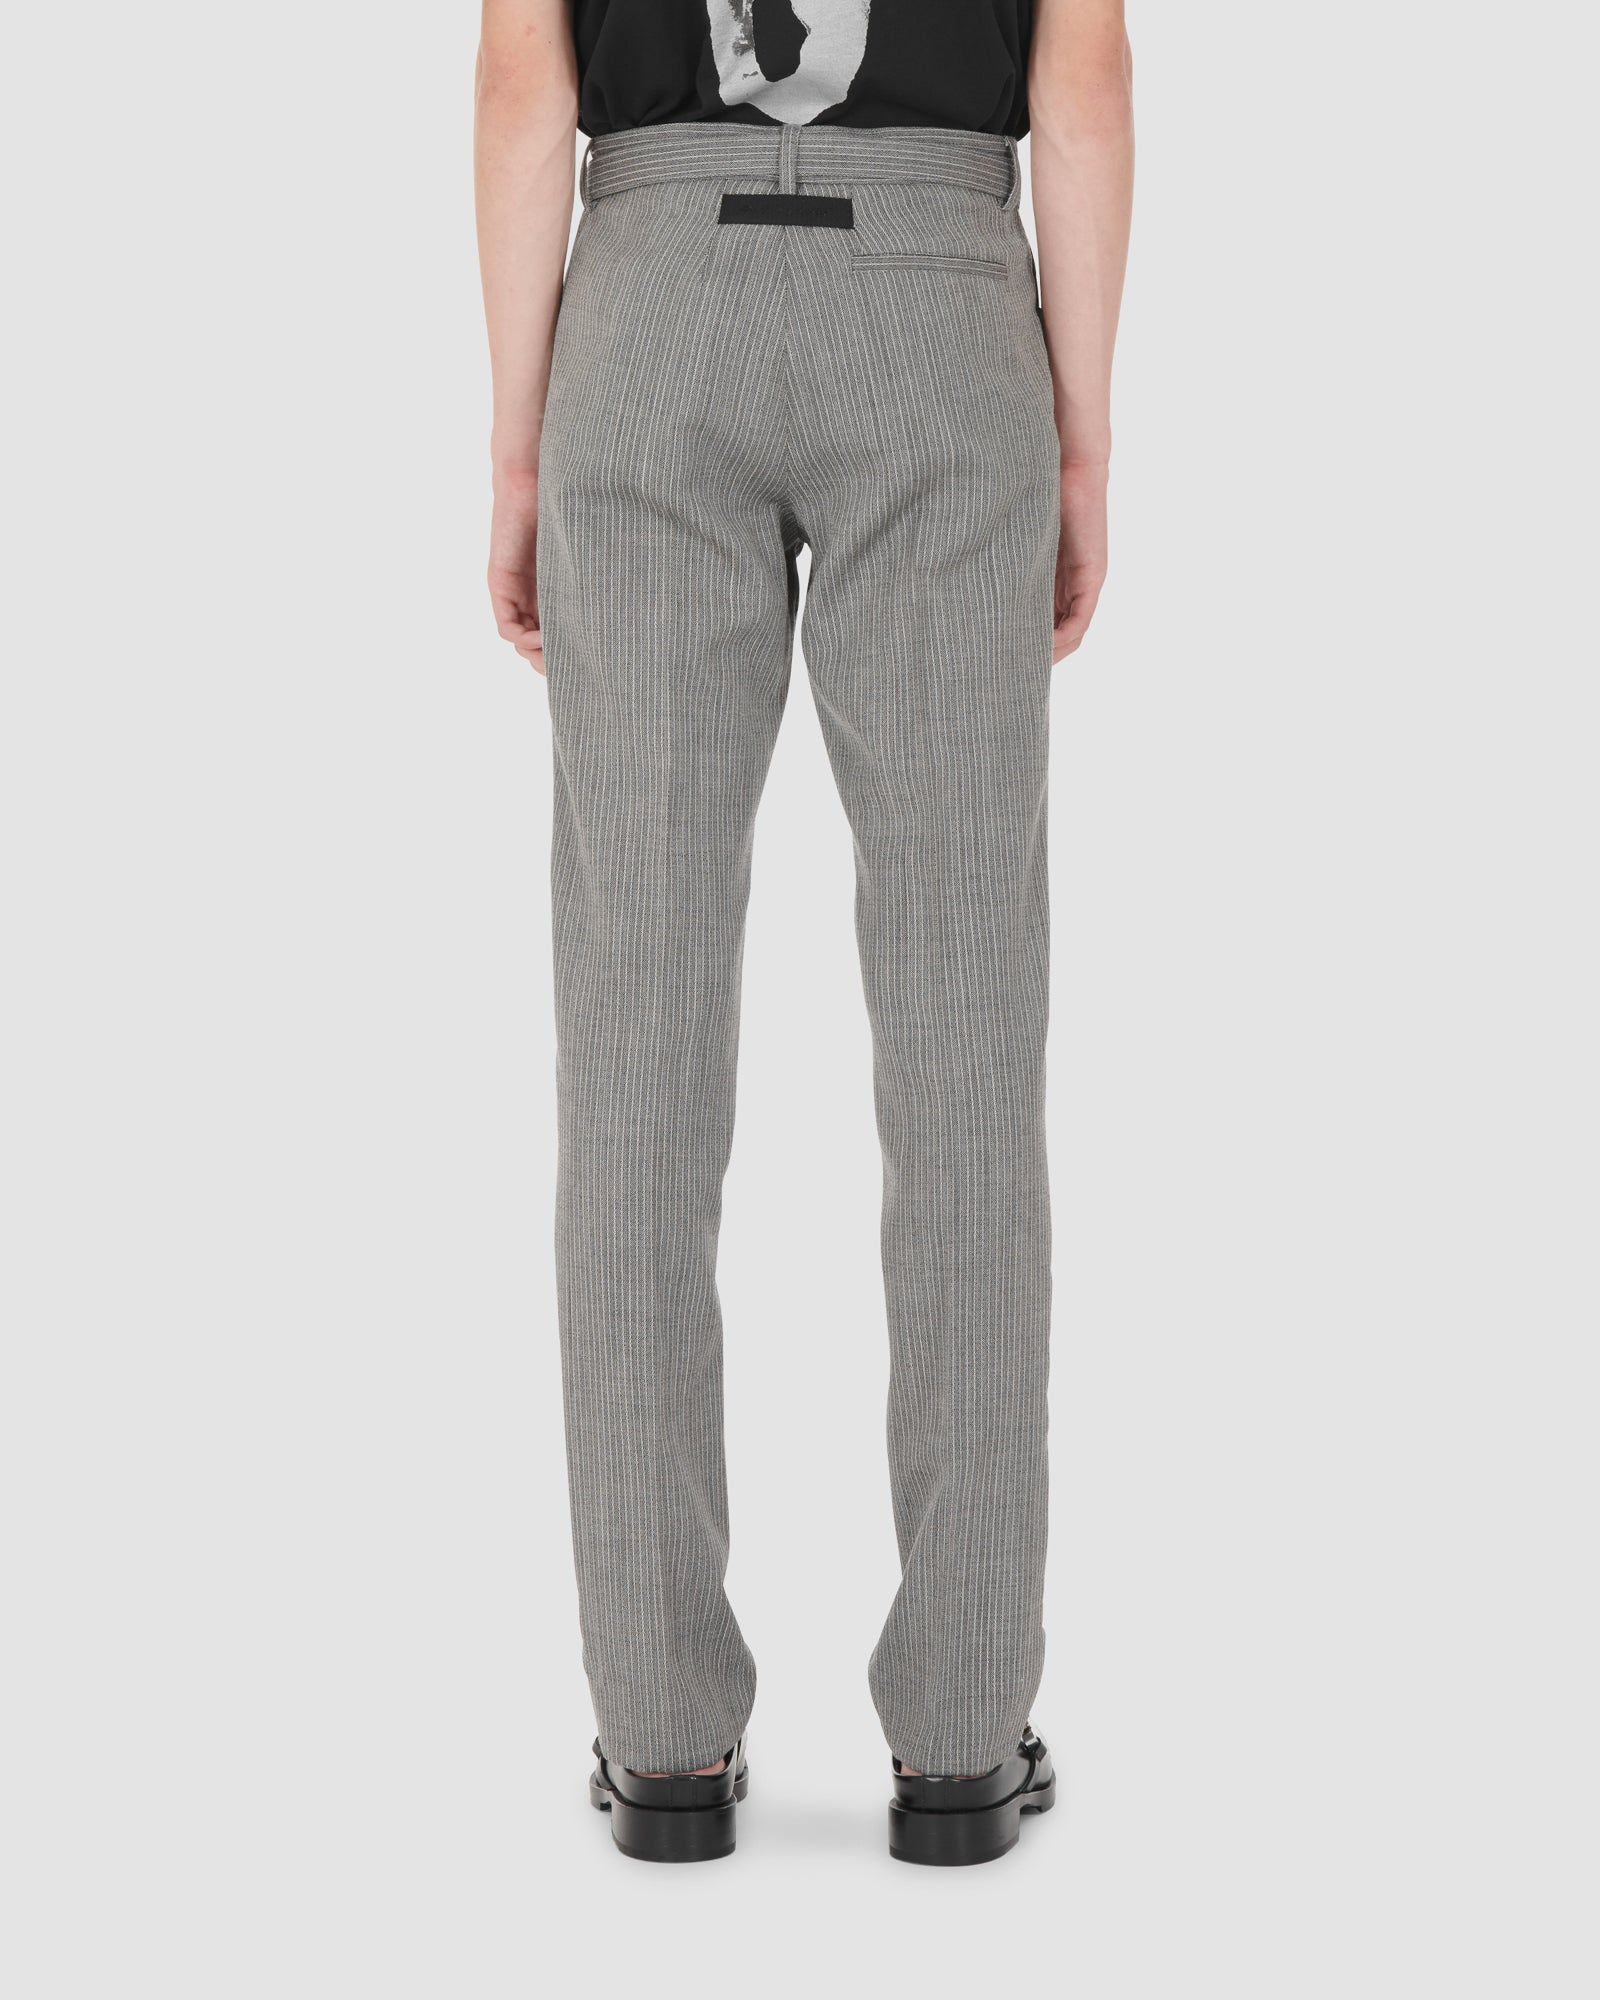 1017 ALYX 9SM | CLASSIC PANT | Pants | Google Shopping, Grey, Man, Pants, S20, SS20, Trousers